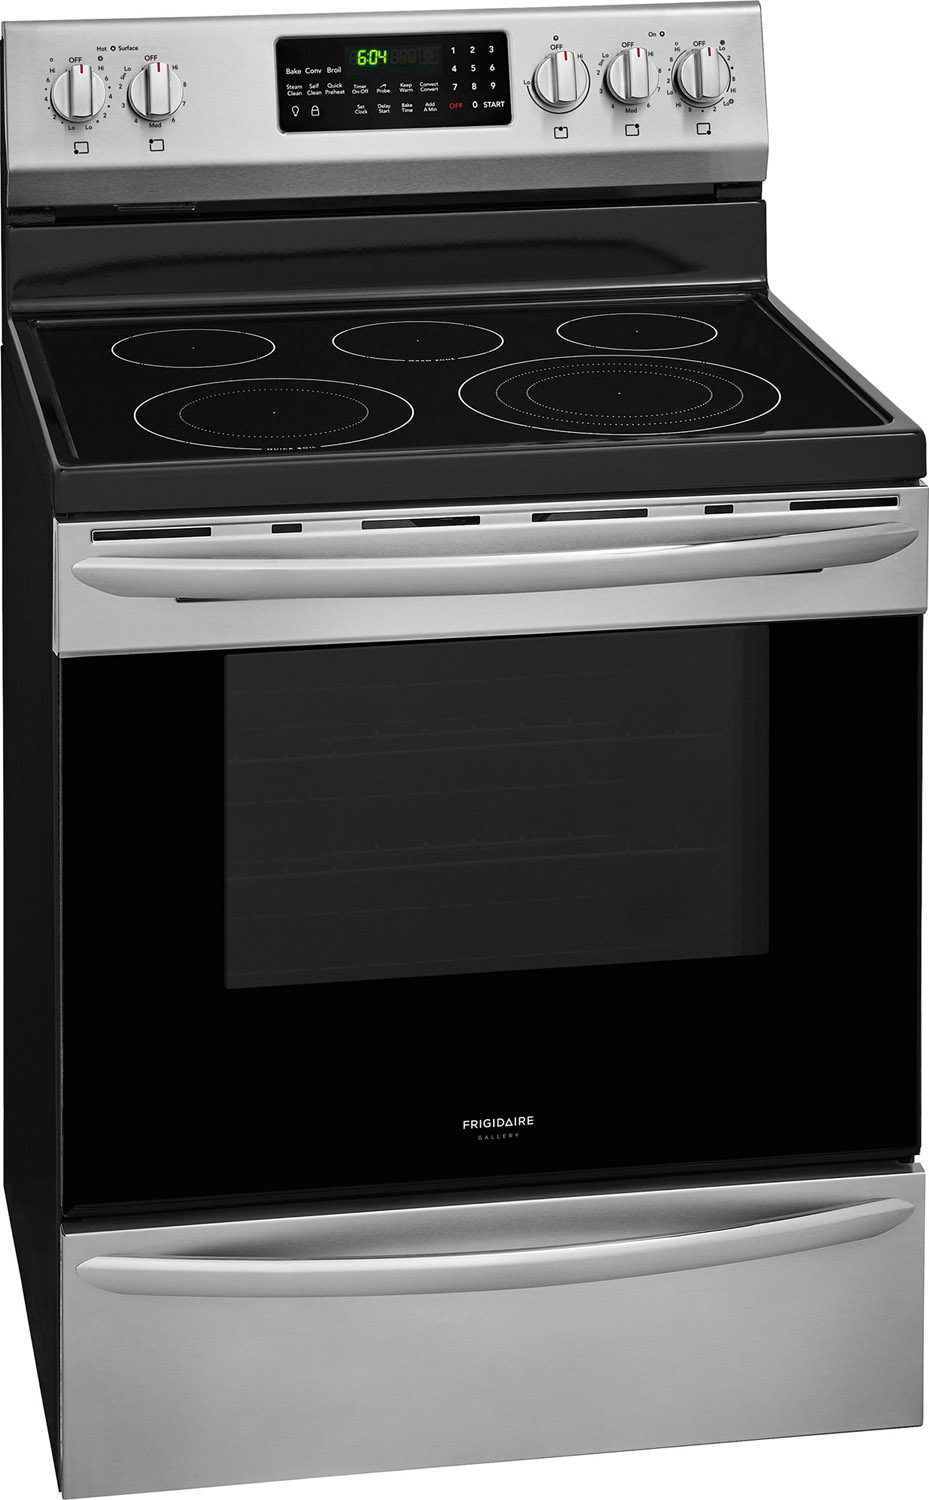 Frigidaire Gallery Stainless Electric Range Fgef3059tf